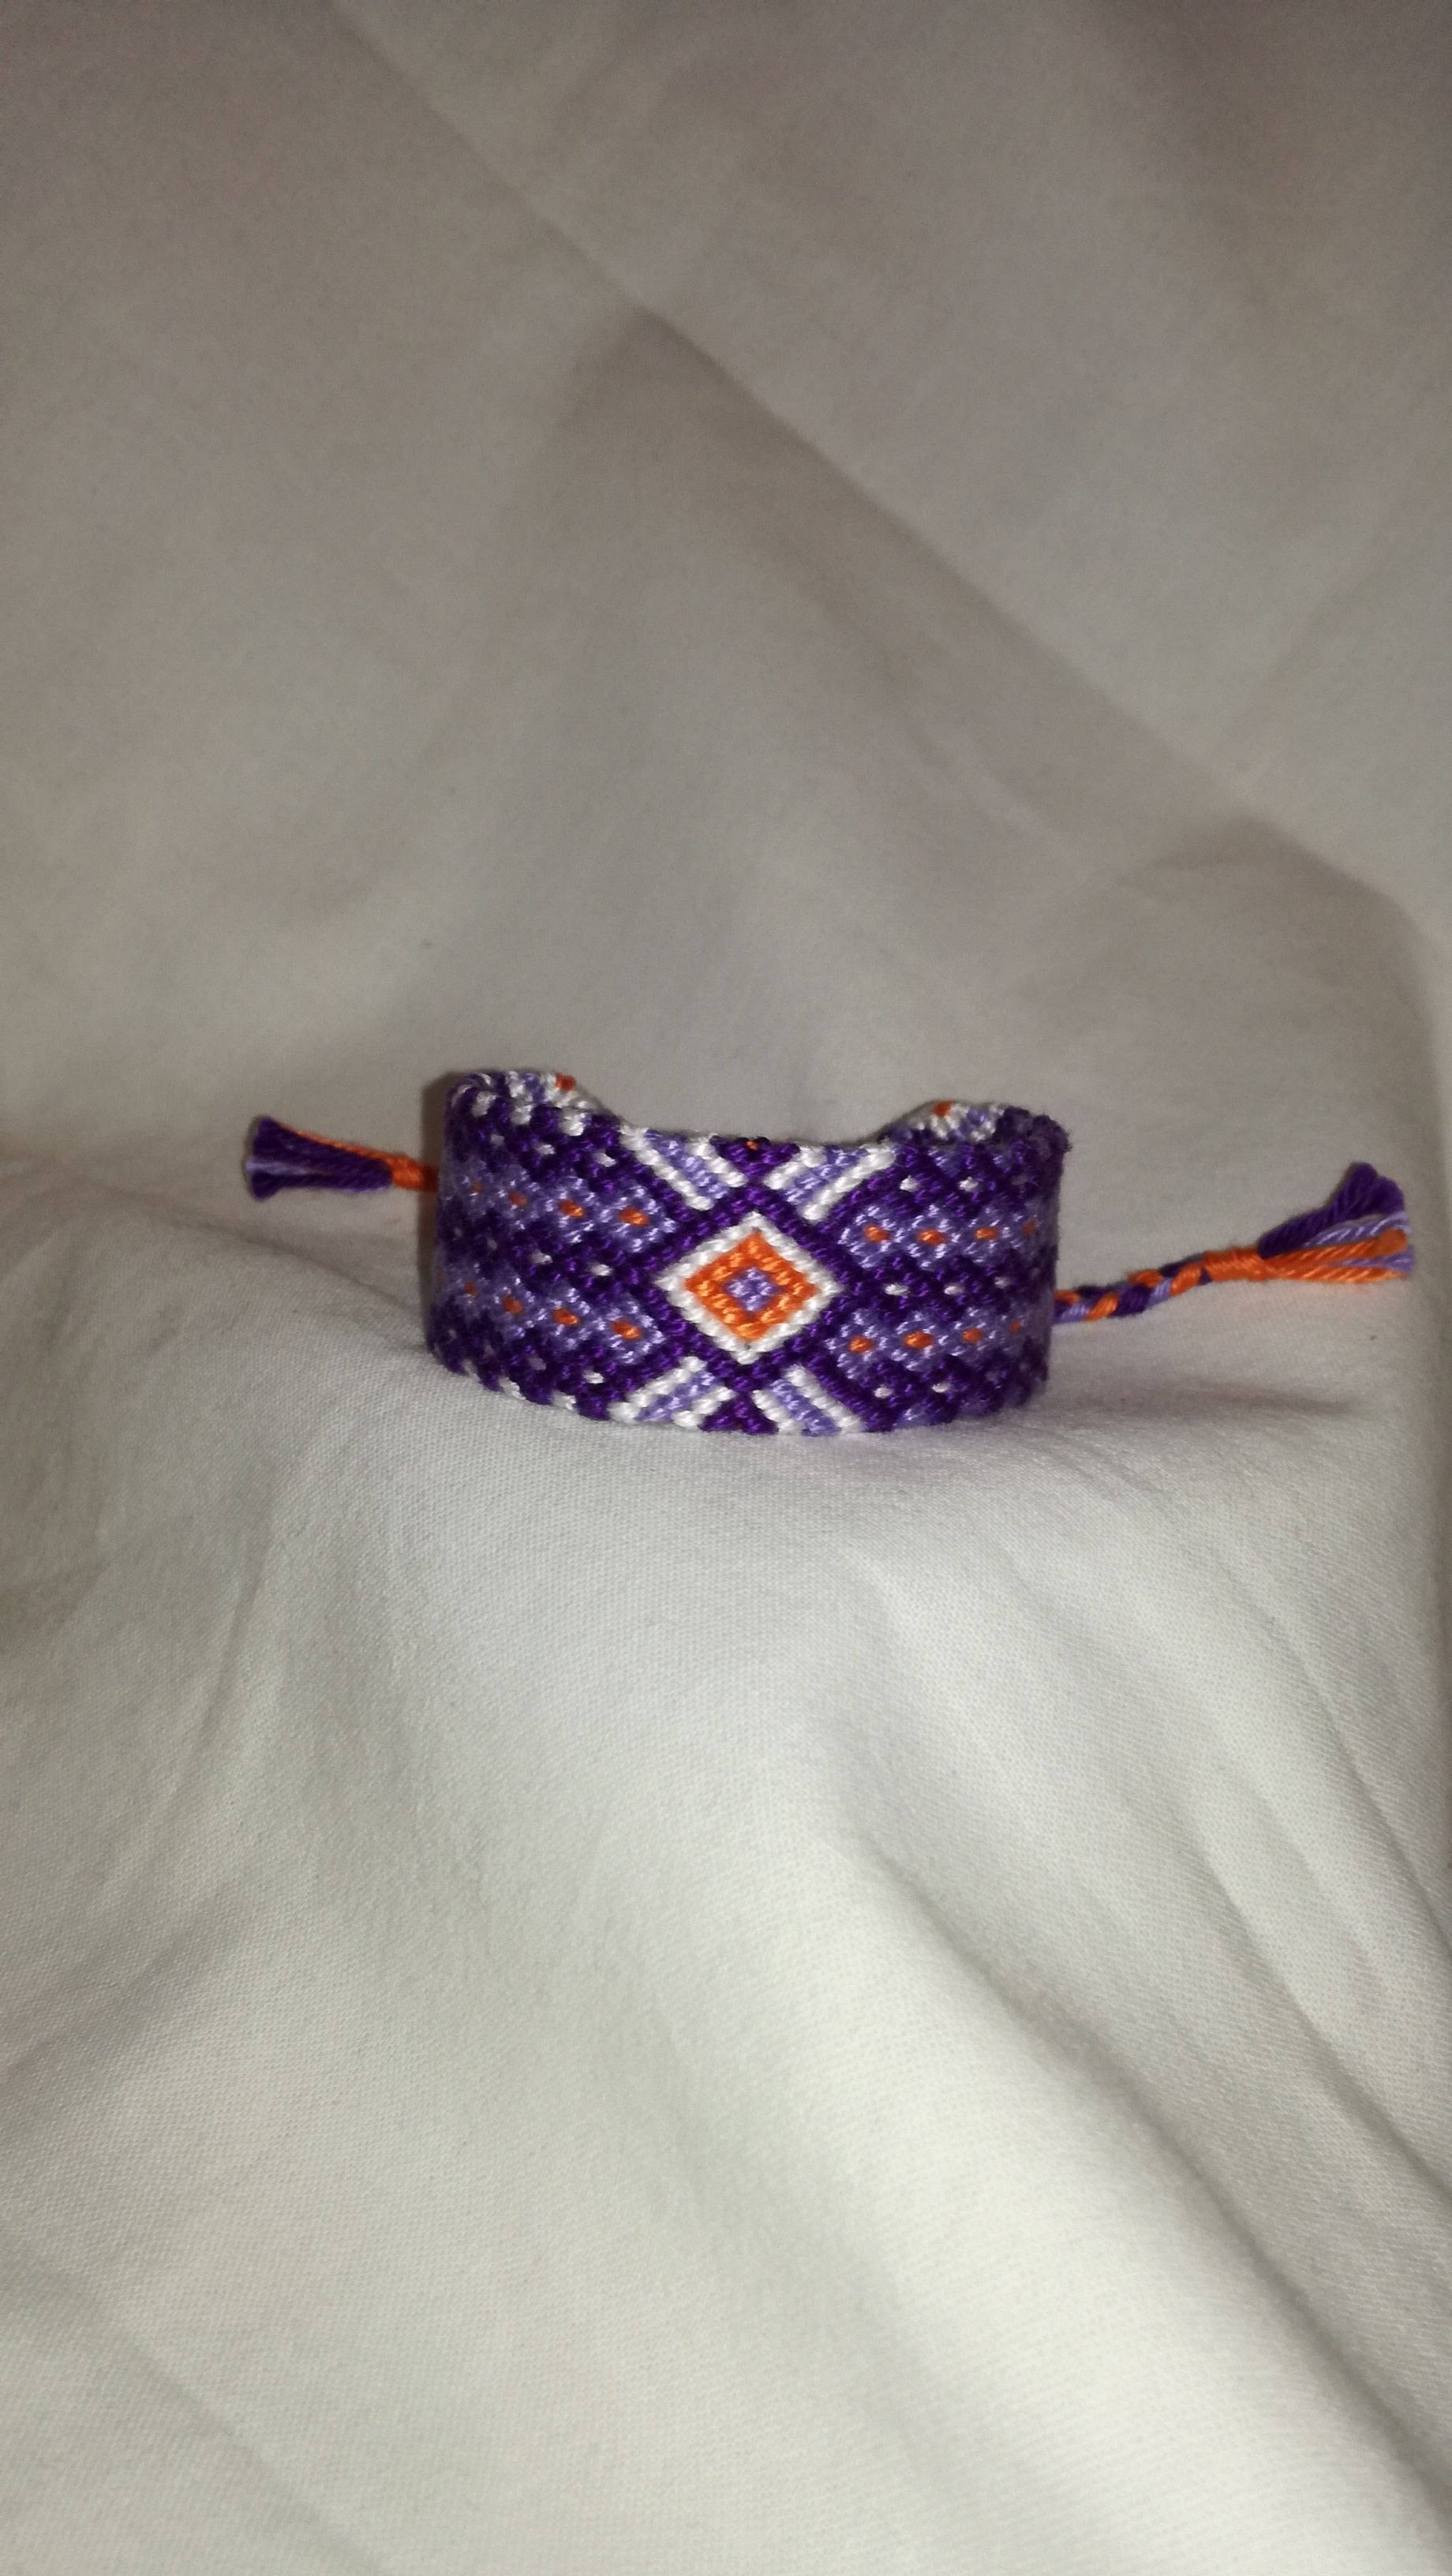 gift wrist band boho woman shades bracelet braided string knitted for purple art